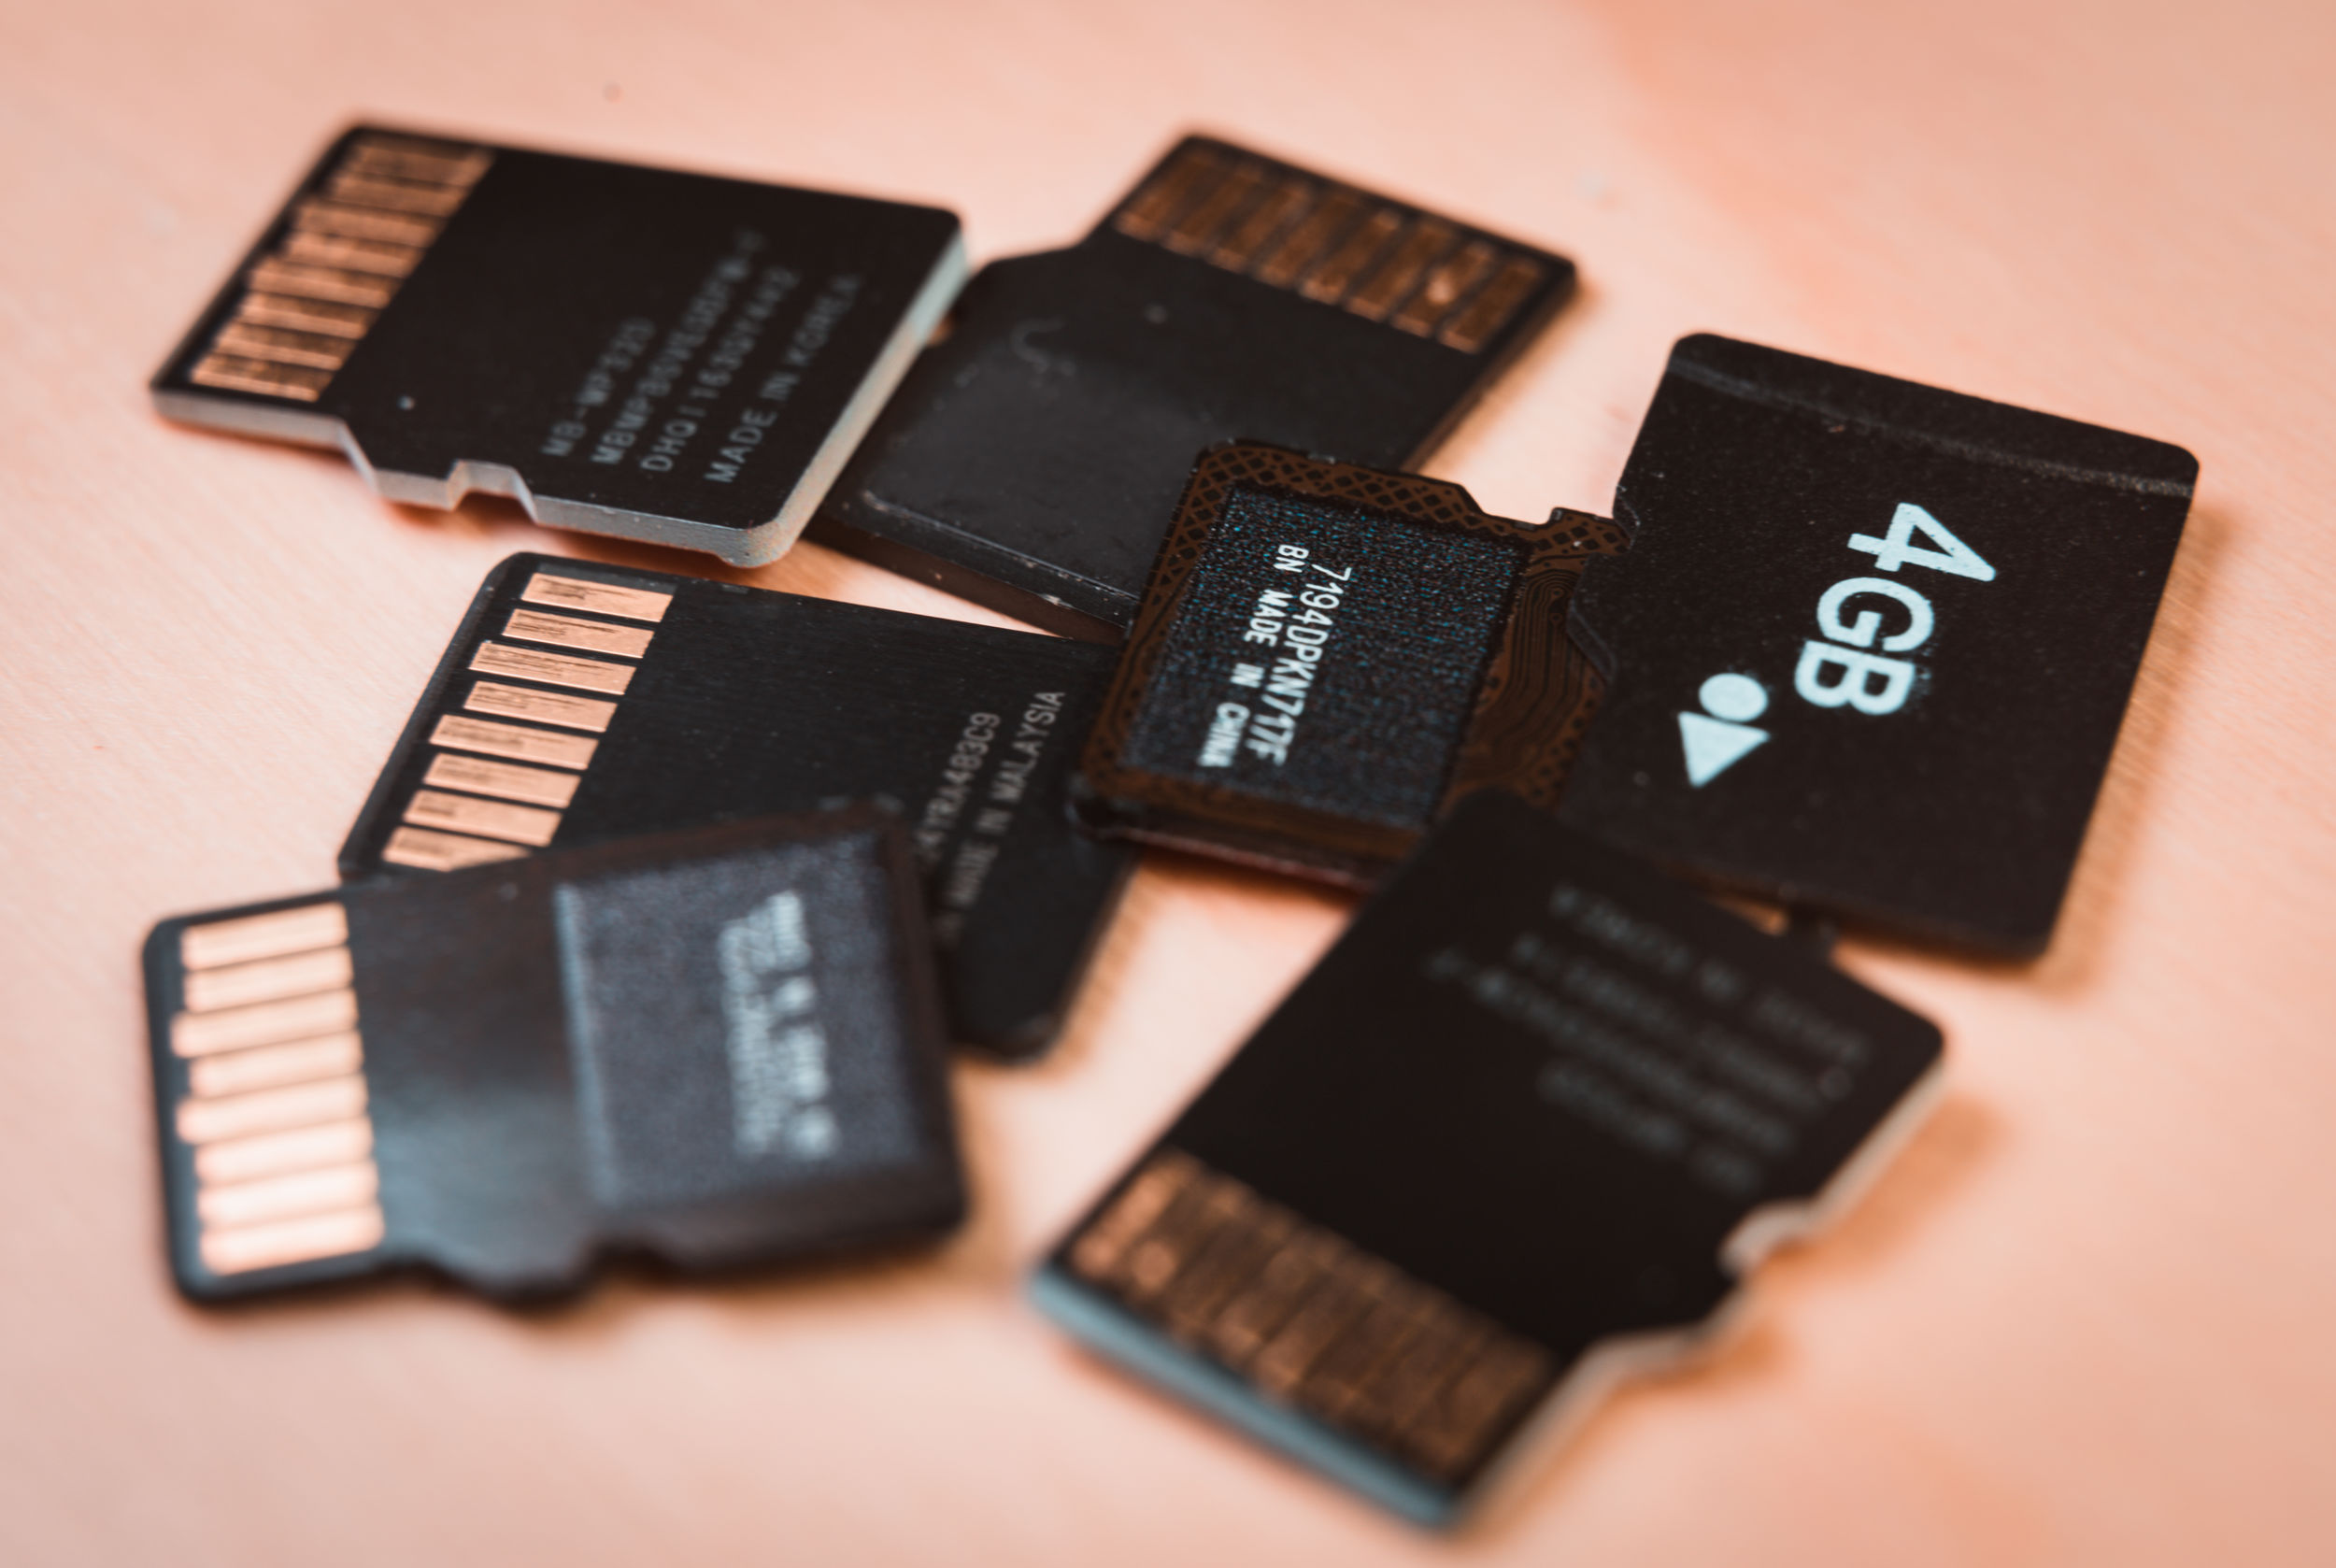 Group of MicroSD cards over a wooden table